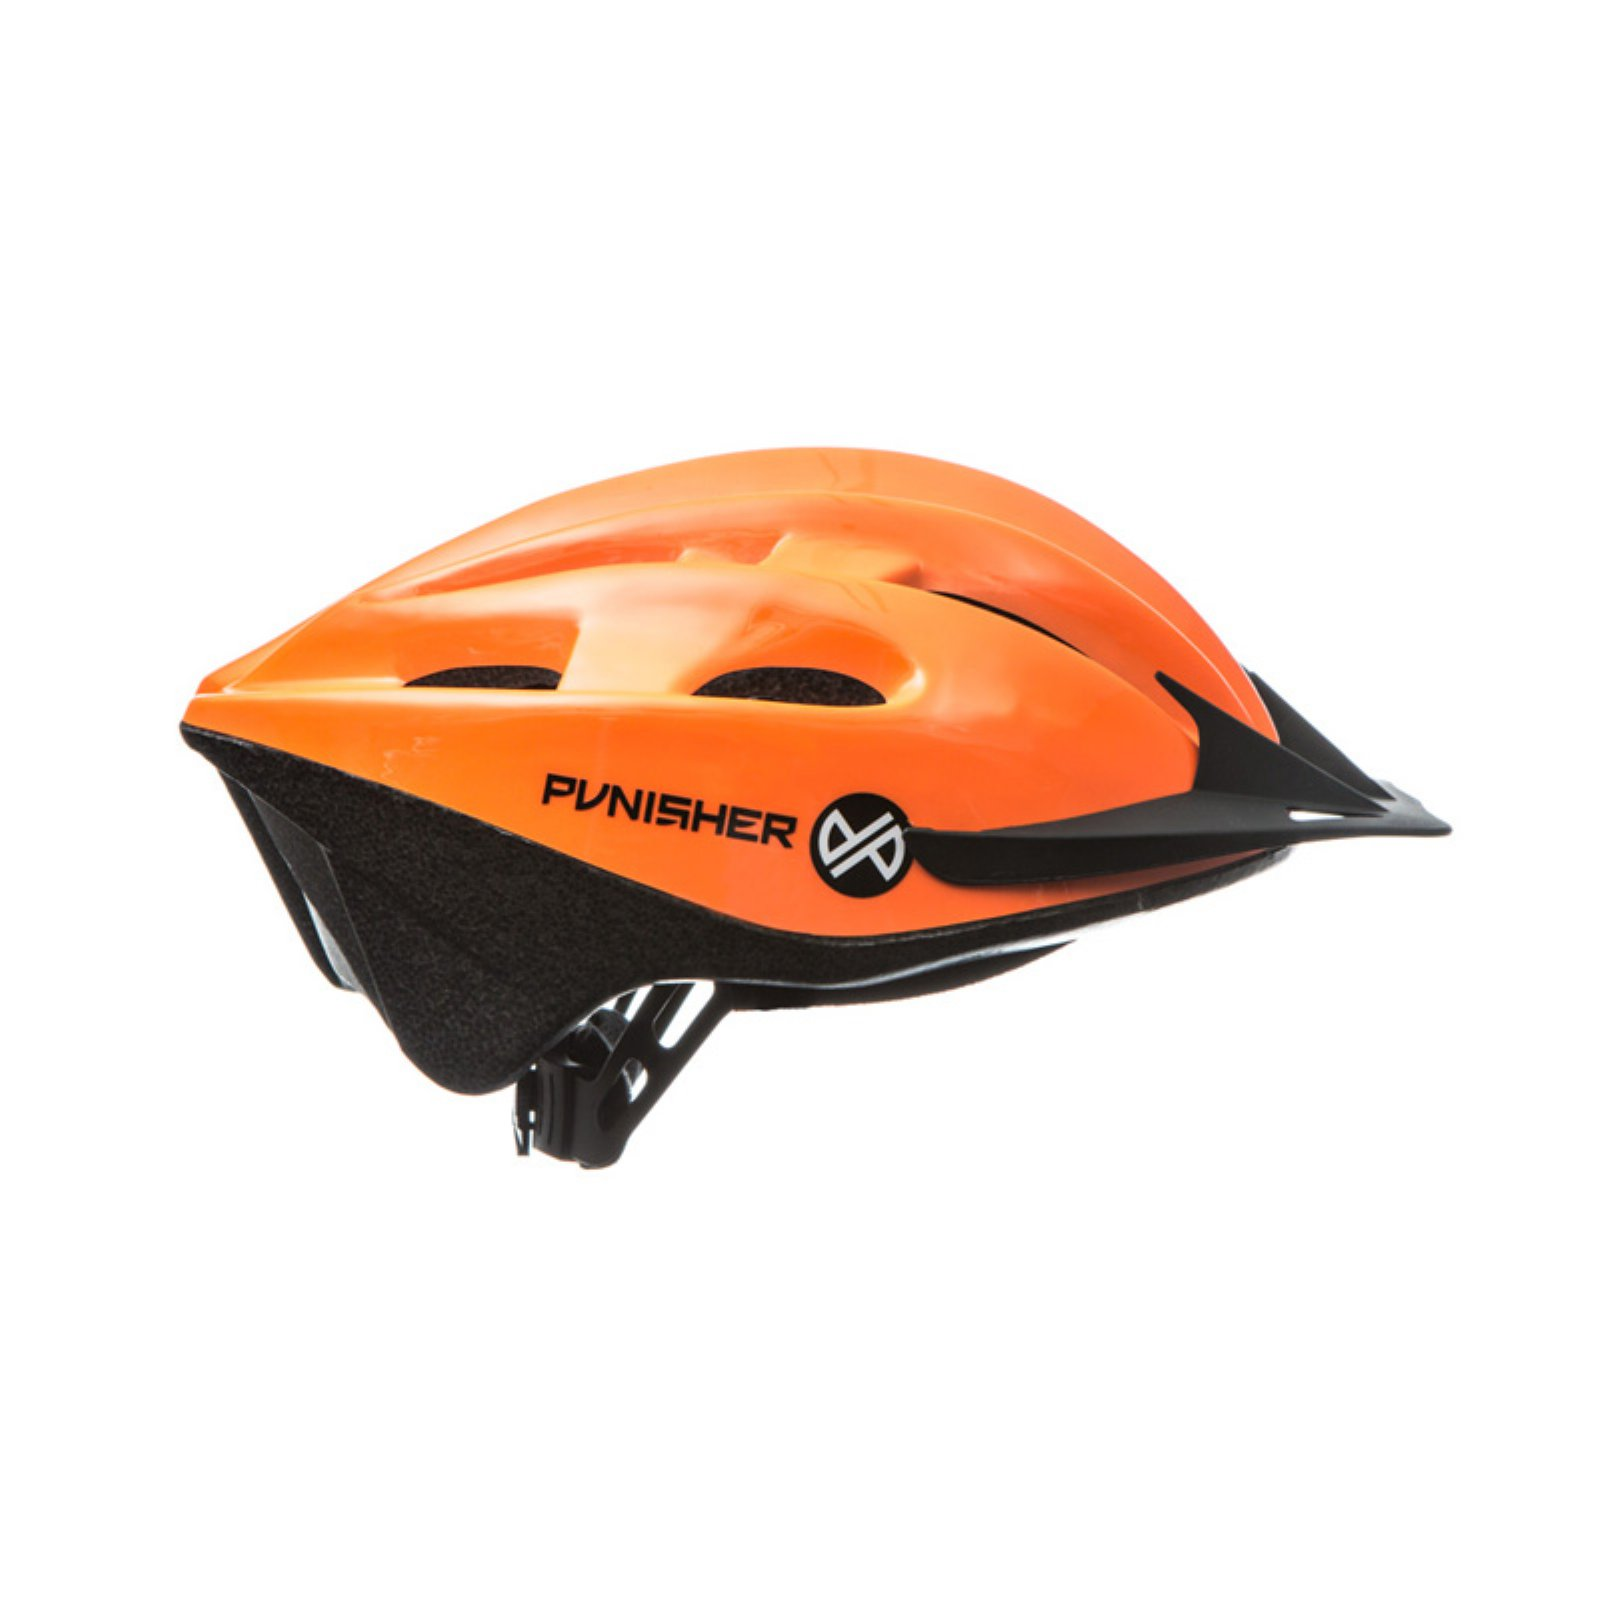 Punisher 18-Vent Adult Cycling Helmet, Bright Orange